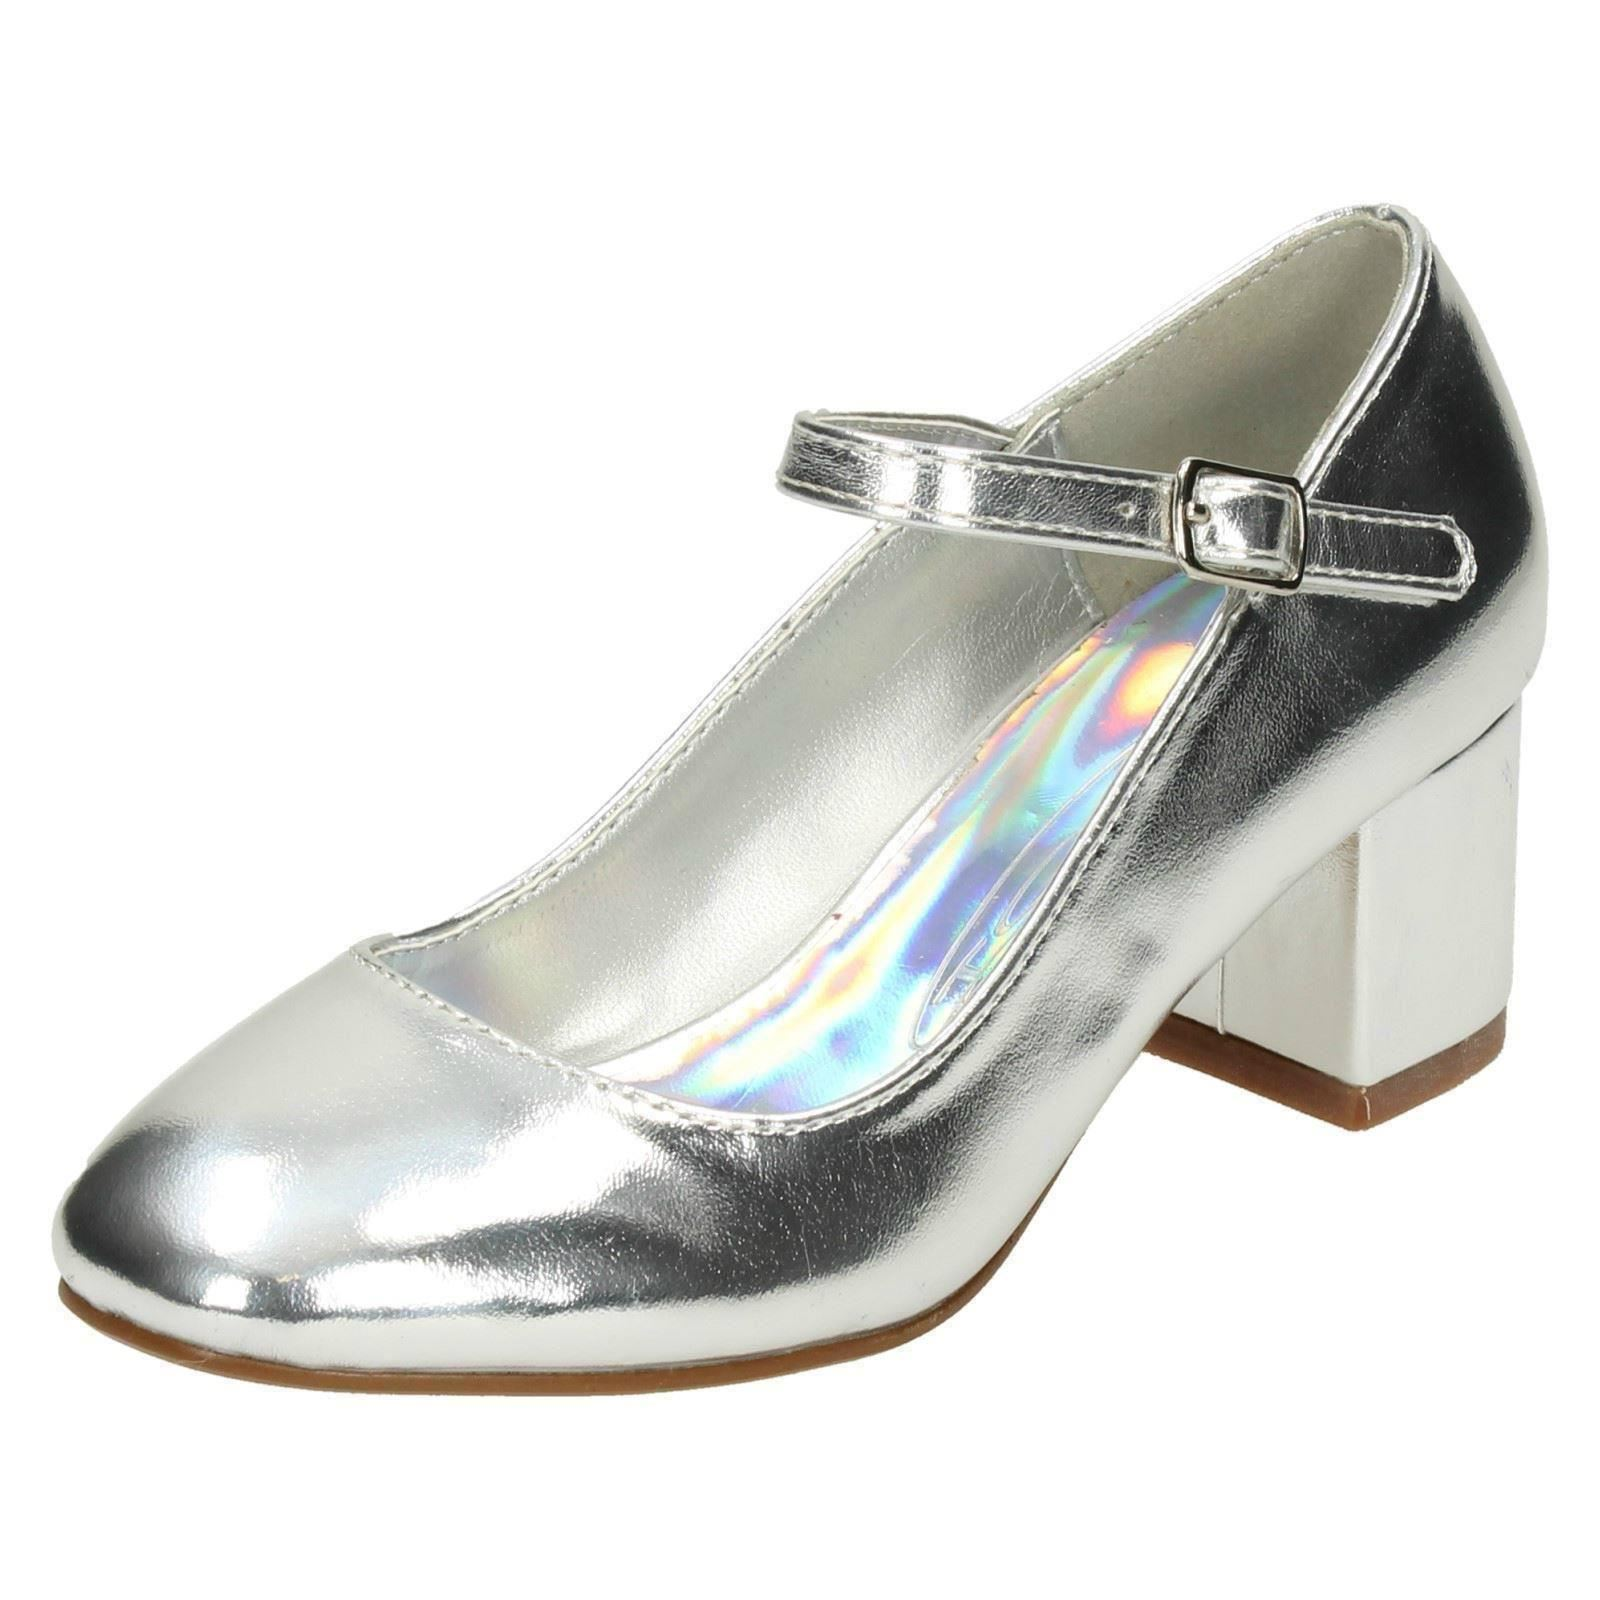 ab100a9f5ae Girls spot on blocked heel dolly shoes silver infant jpg 1600x1600 Heel  dolly